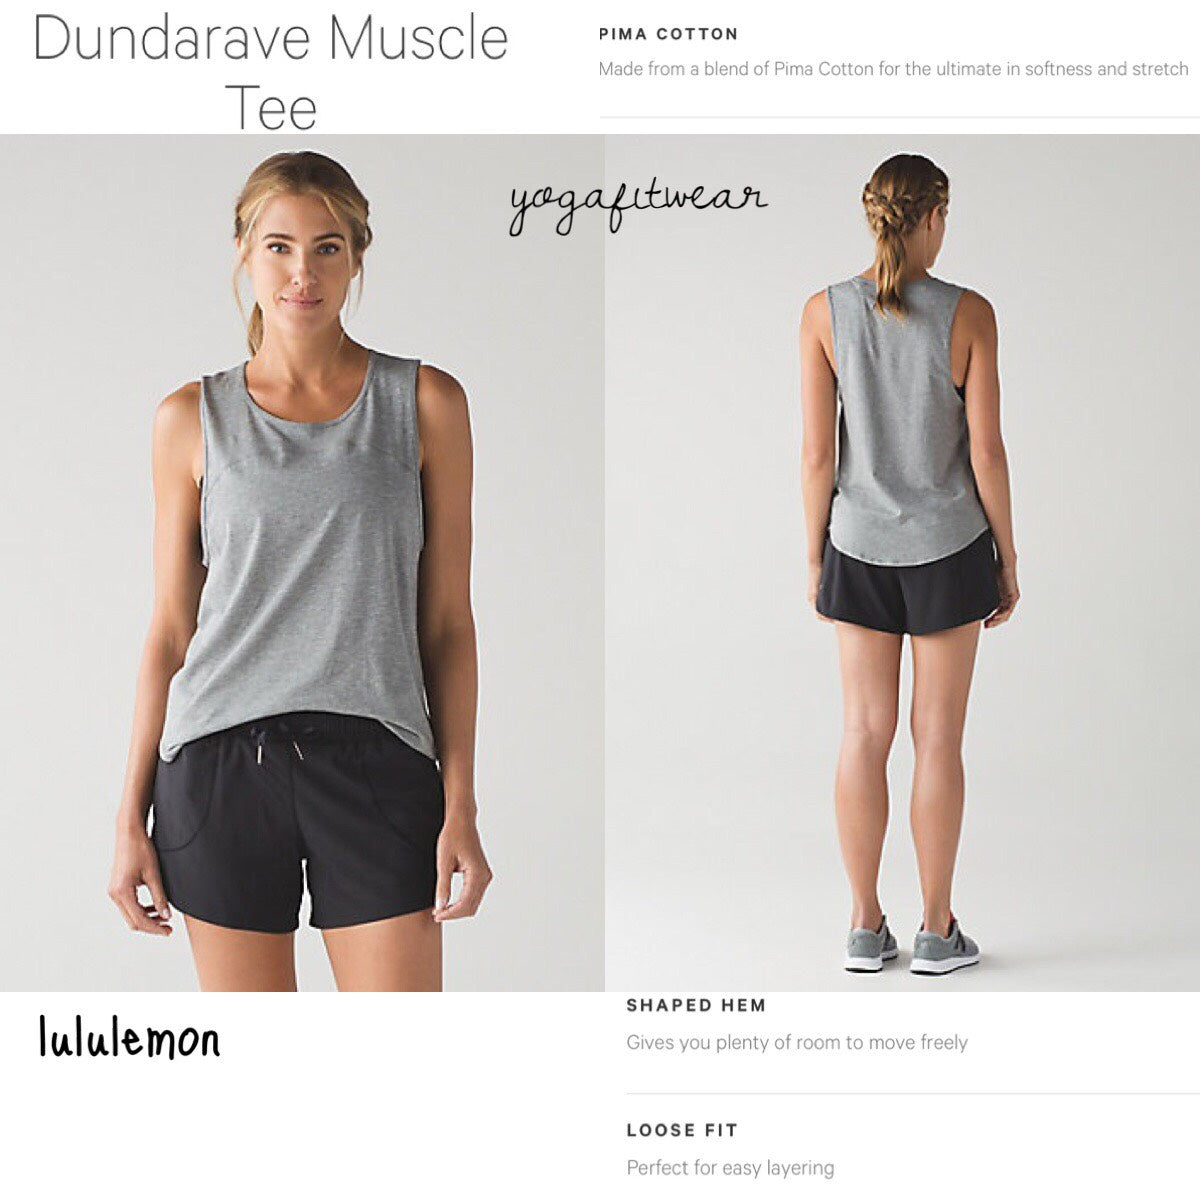 Lululemon - Dundarave Mascle Tee (Heathered Medium Grey) (LL01294)